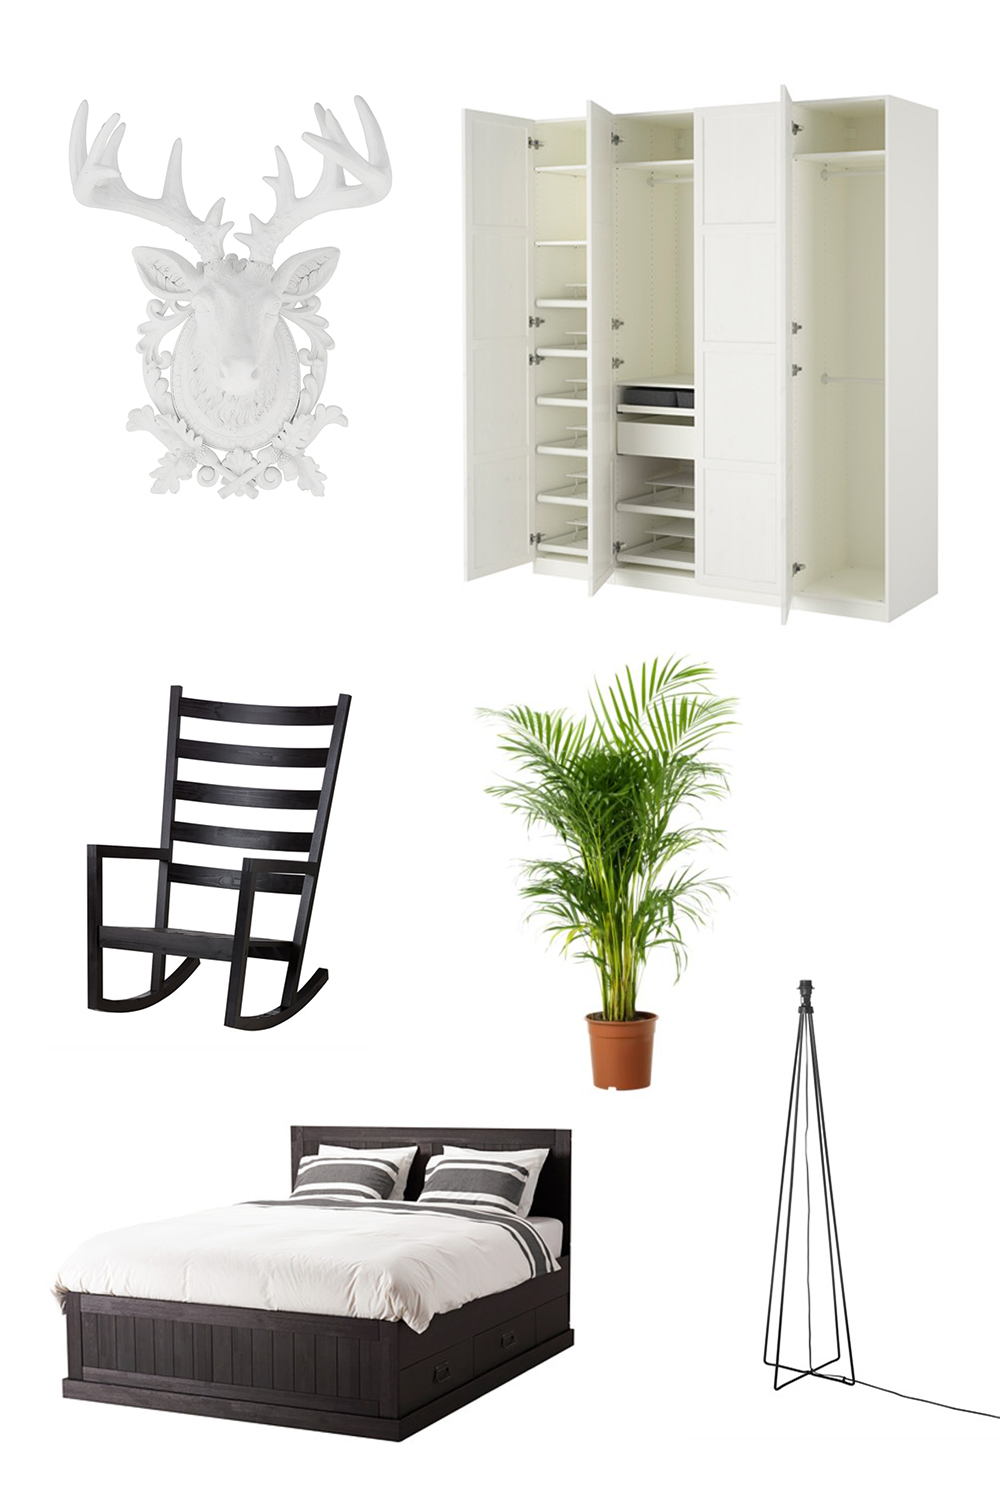 ikea innsbruck jugendzimmer. Black Bedroom Furniture Sets. Home Design Ideas